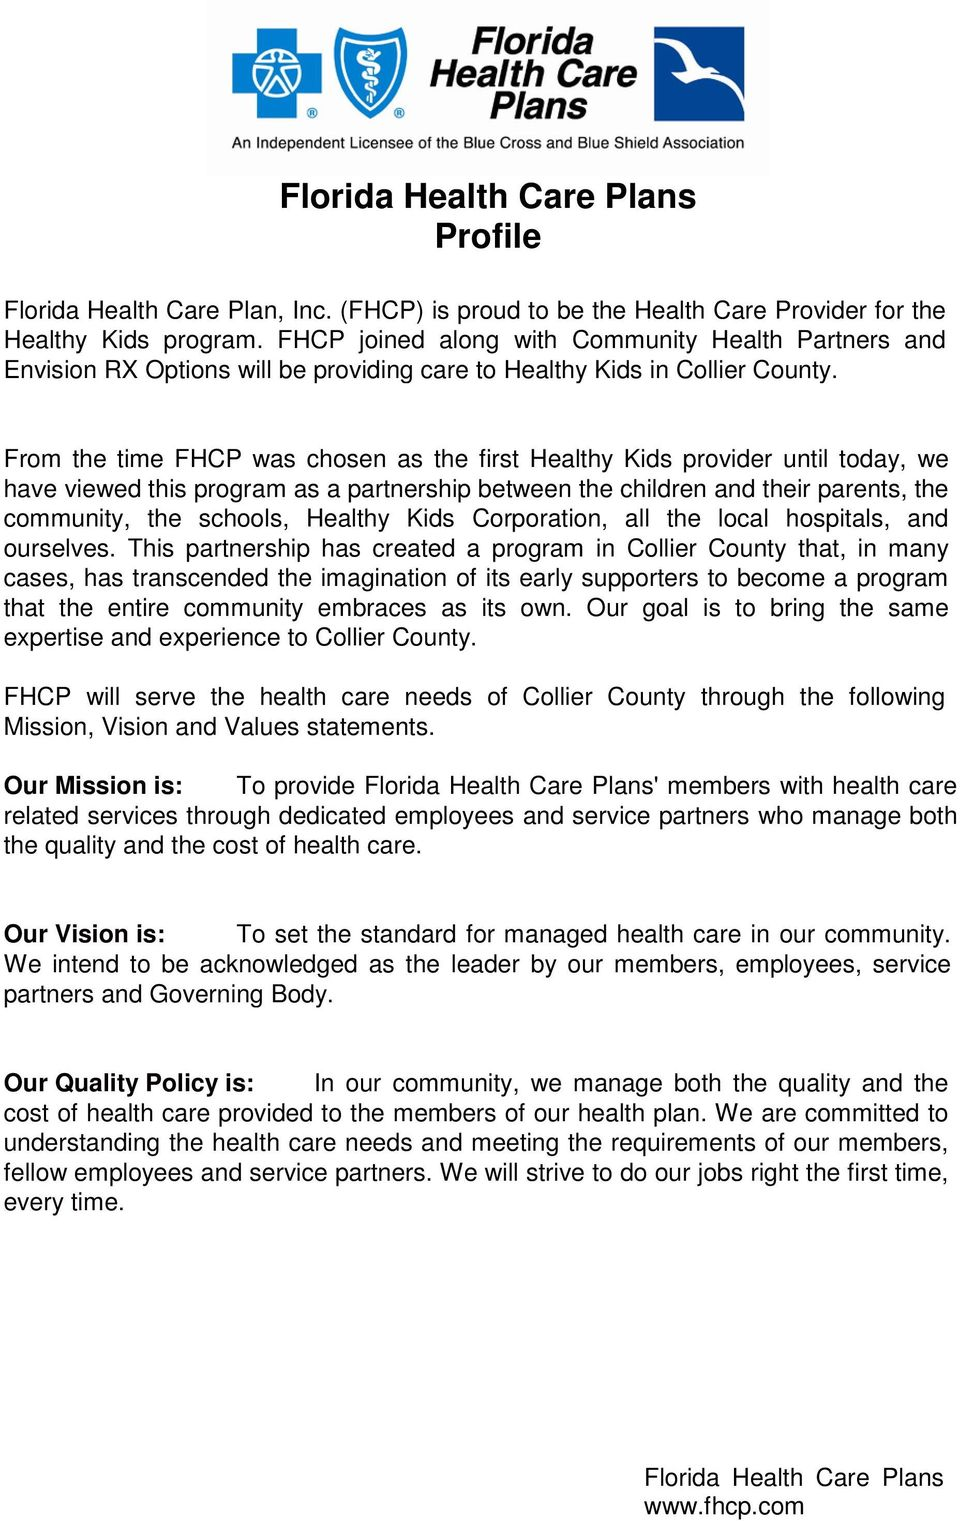 From the time FHCP was chosen as the first Healthy Kids provider until today, we have viewed this program as a partnership between the children and their parents, the community, the schools, Healthy